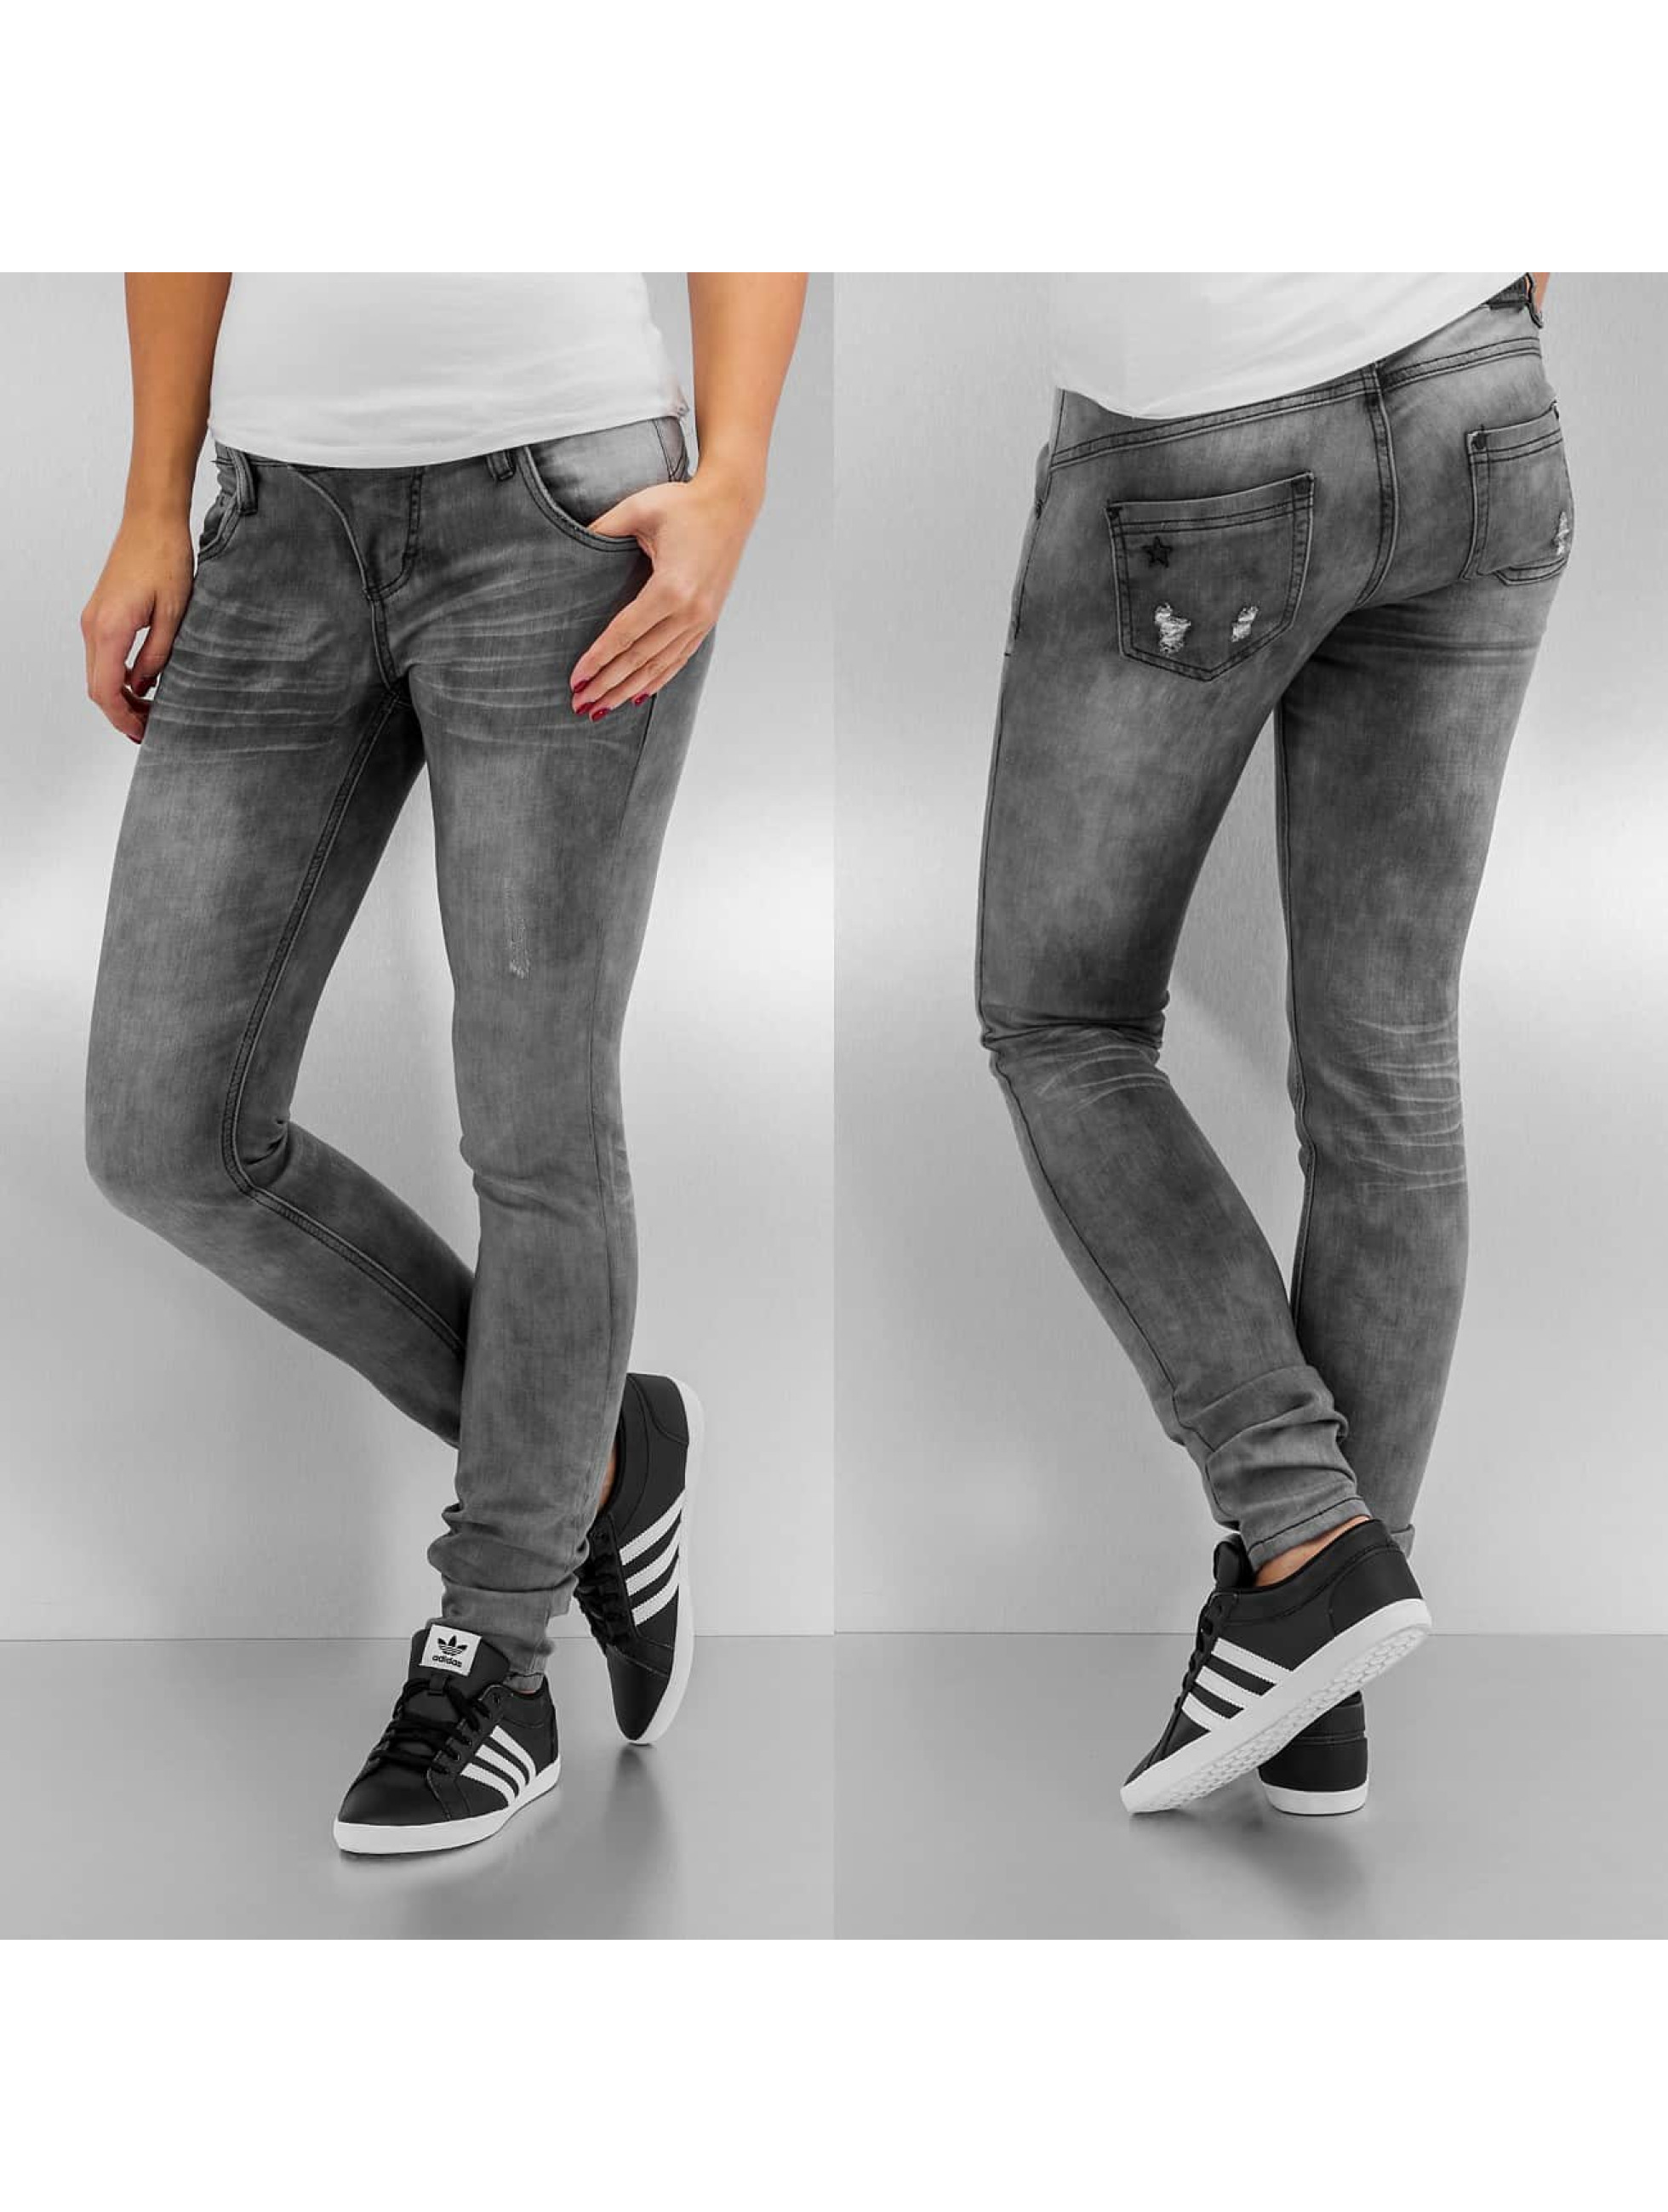 sublevel jeans skinny jeans just love in grau 241132. Black Bedroom Furniture Sets. Home Design Ideas